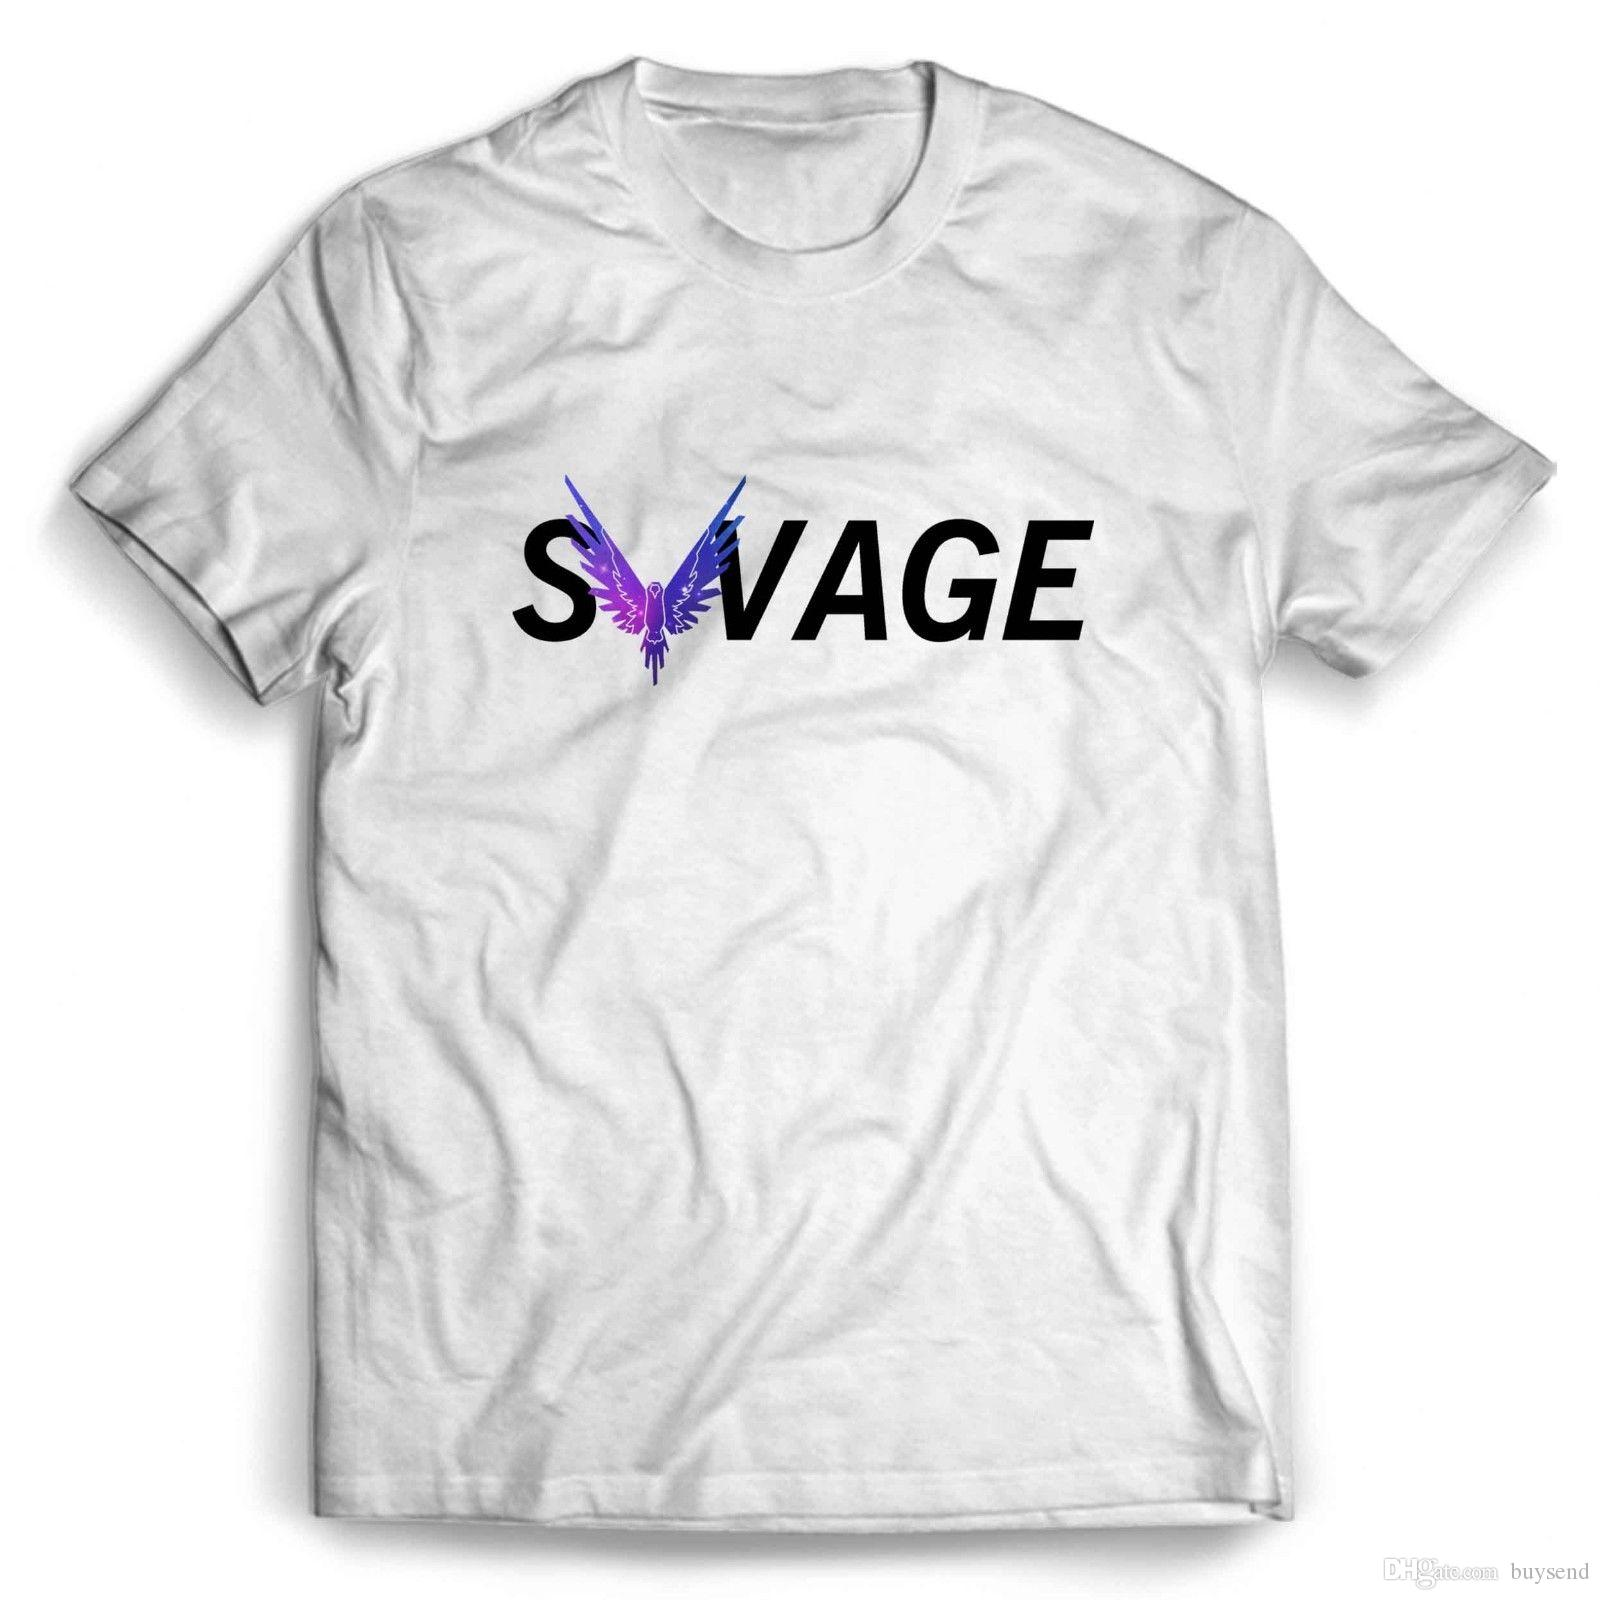 825593a6db7 Maverick Savage Logo Man   Woman T Shirt Random Graphic Tees Quirky T Shirt  Designs From Buysend